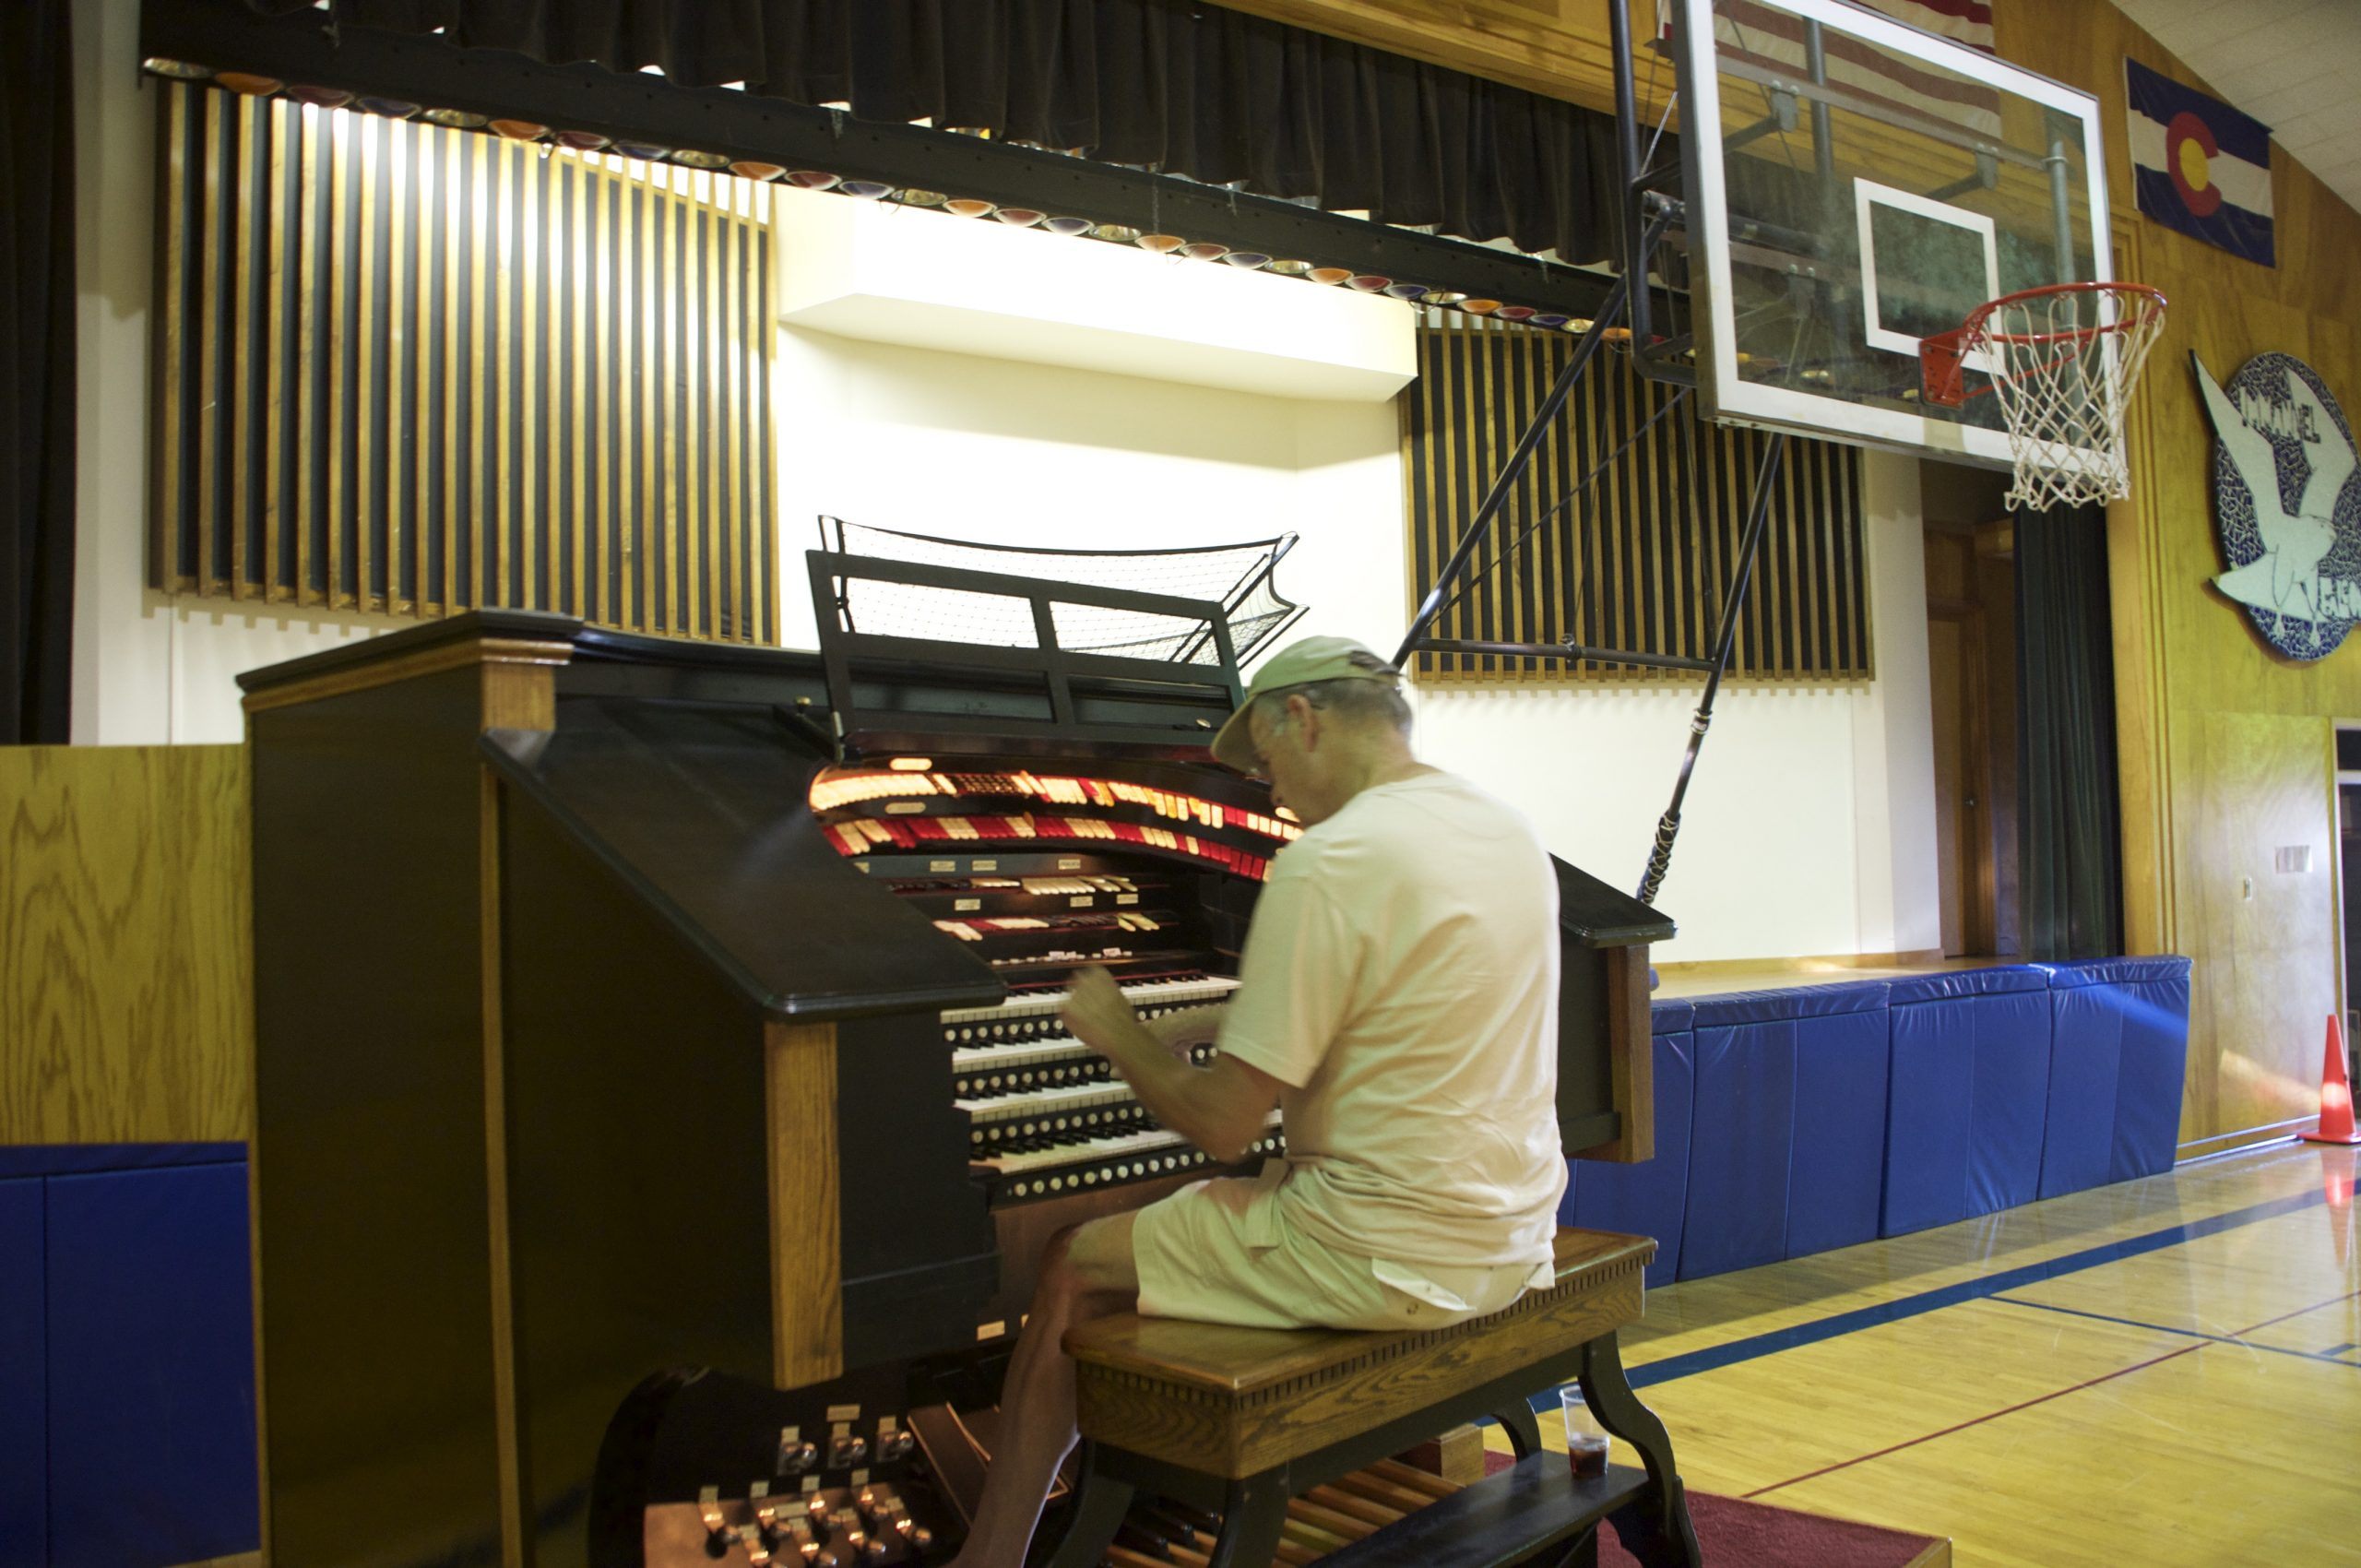 Dave Weesner playing the organ. The organ pipes live behind the white wall pictured here in the background.